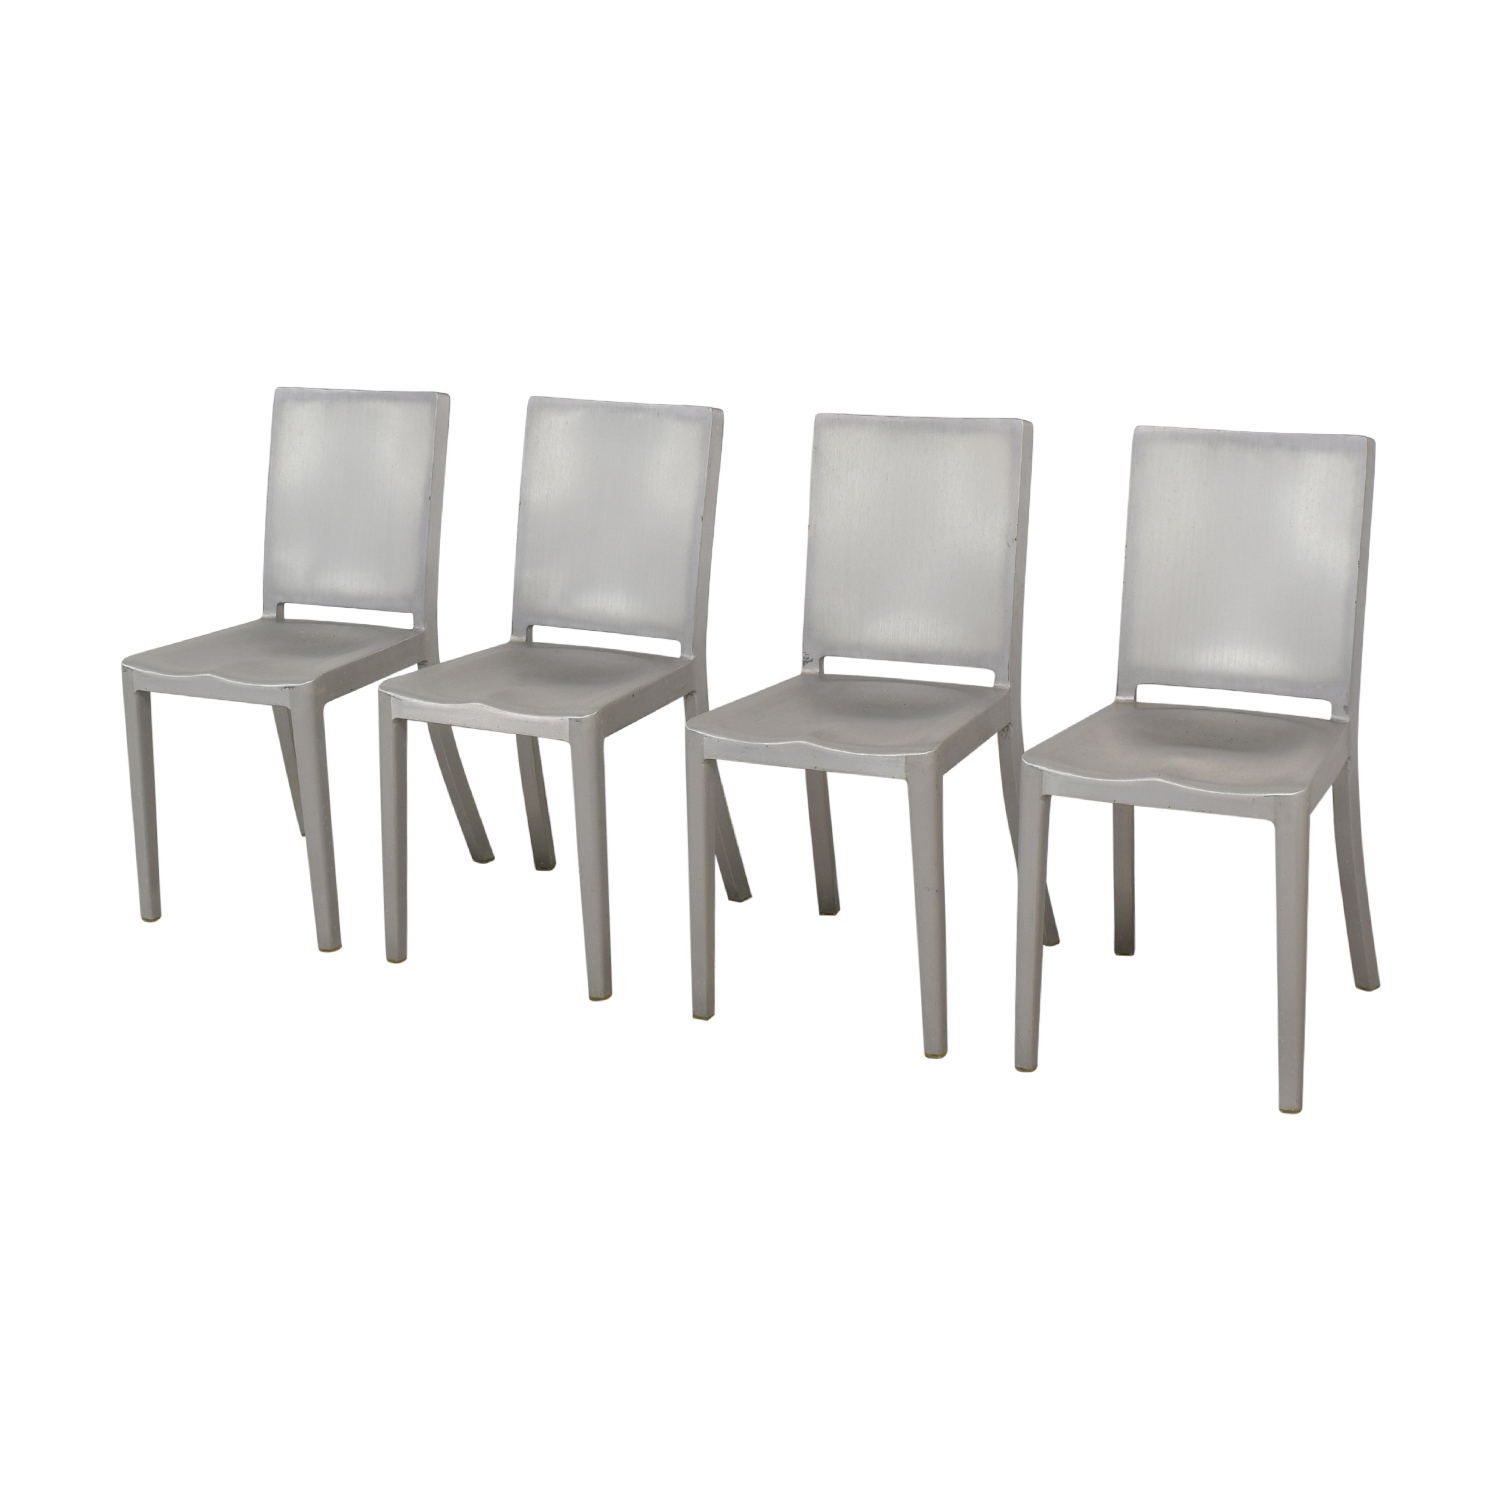 Emeco Emeco by Philippe Starck Hudson Chairs dimensions